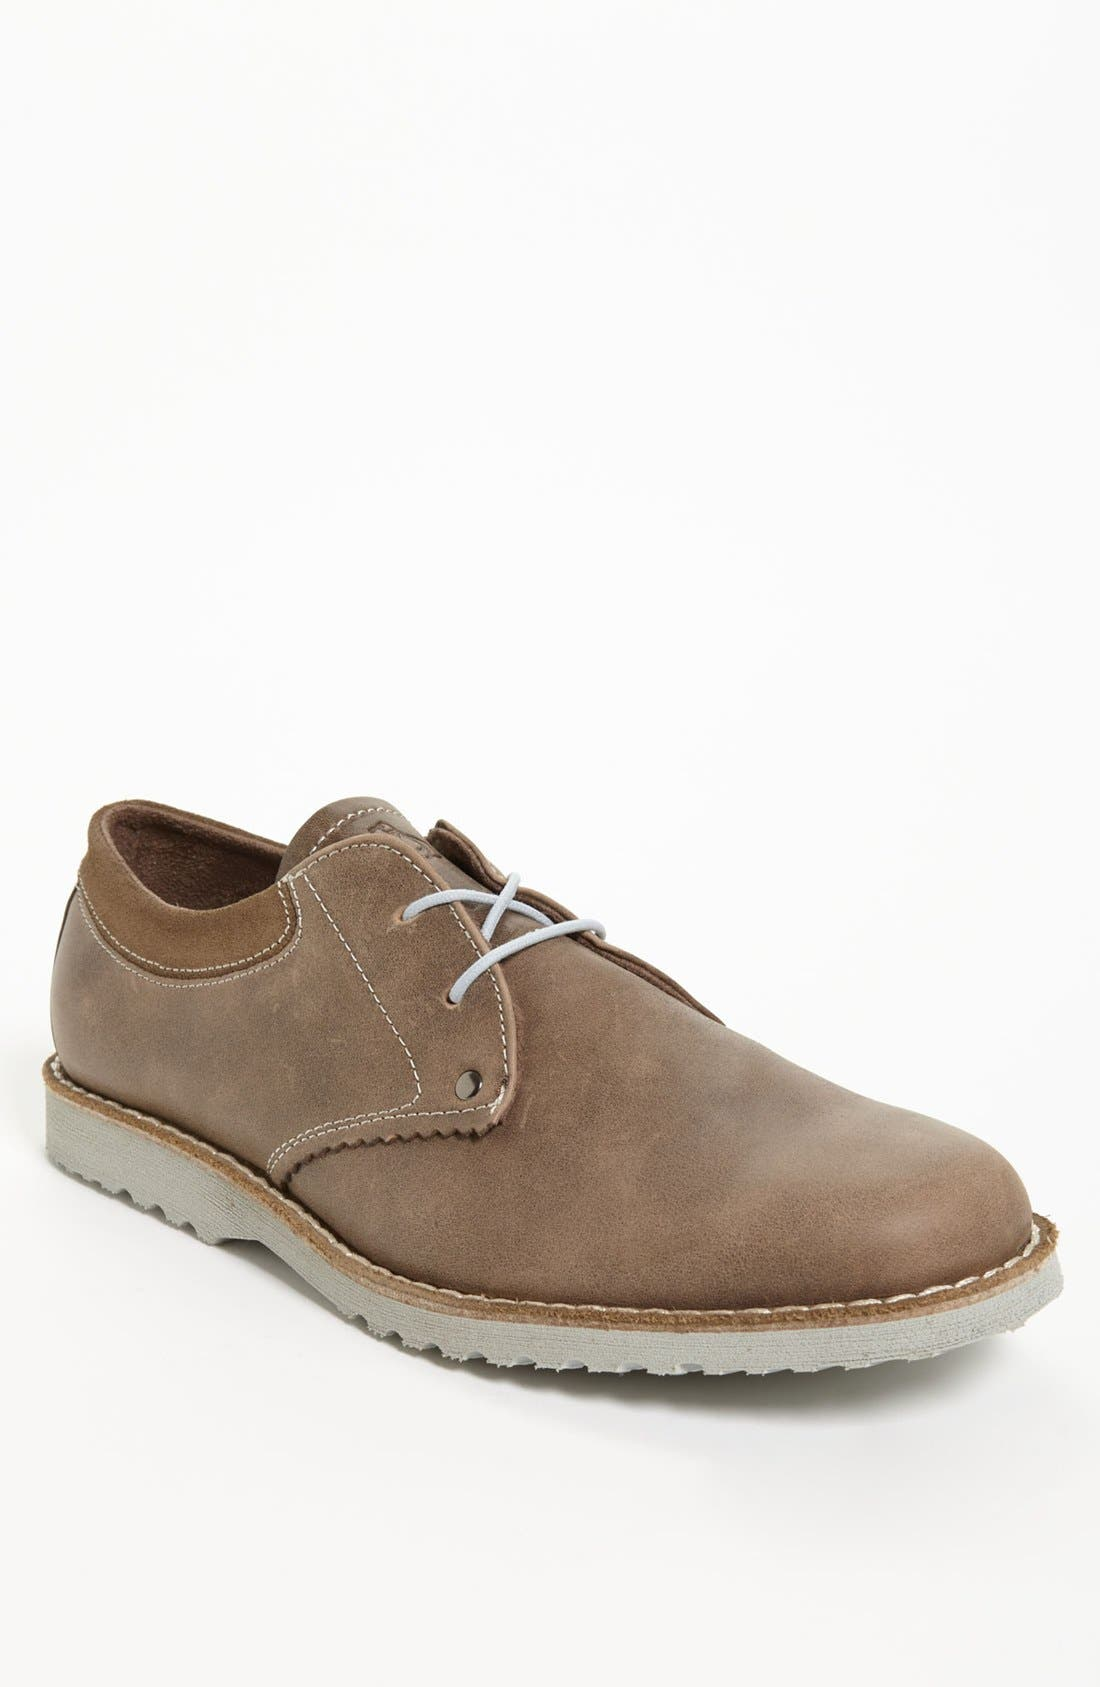 Alternate Image 1 Selected - Original Penguin 'Jennings' Buck Shoe